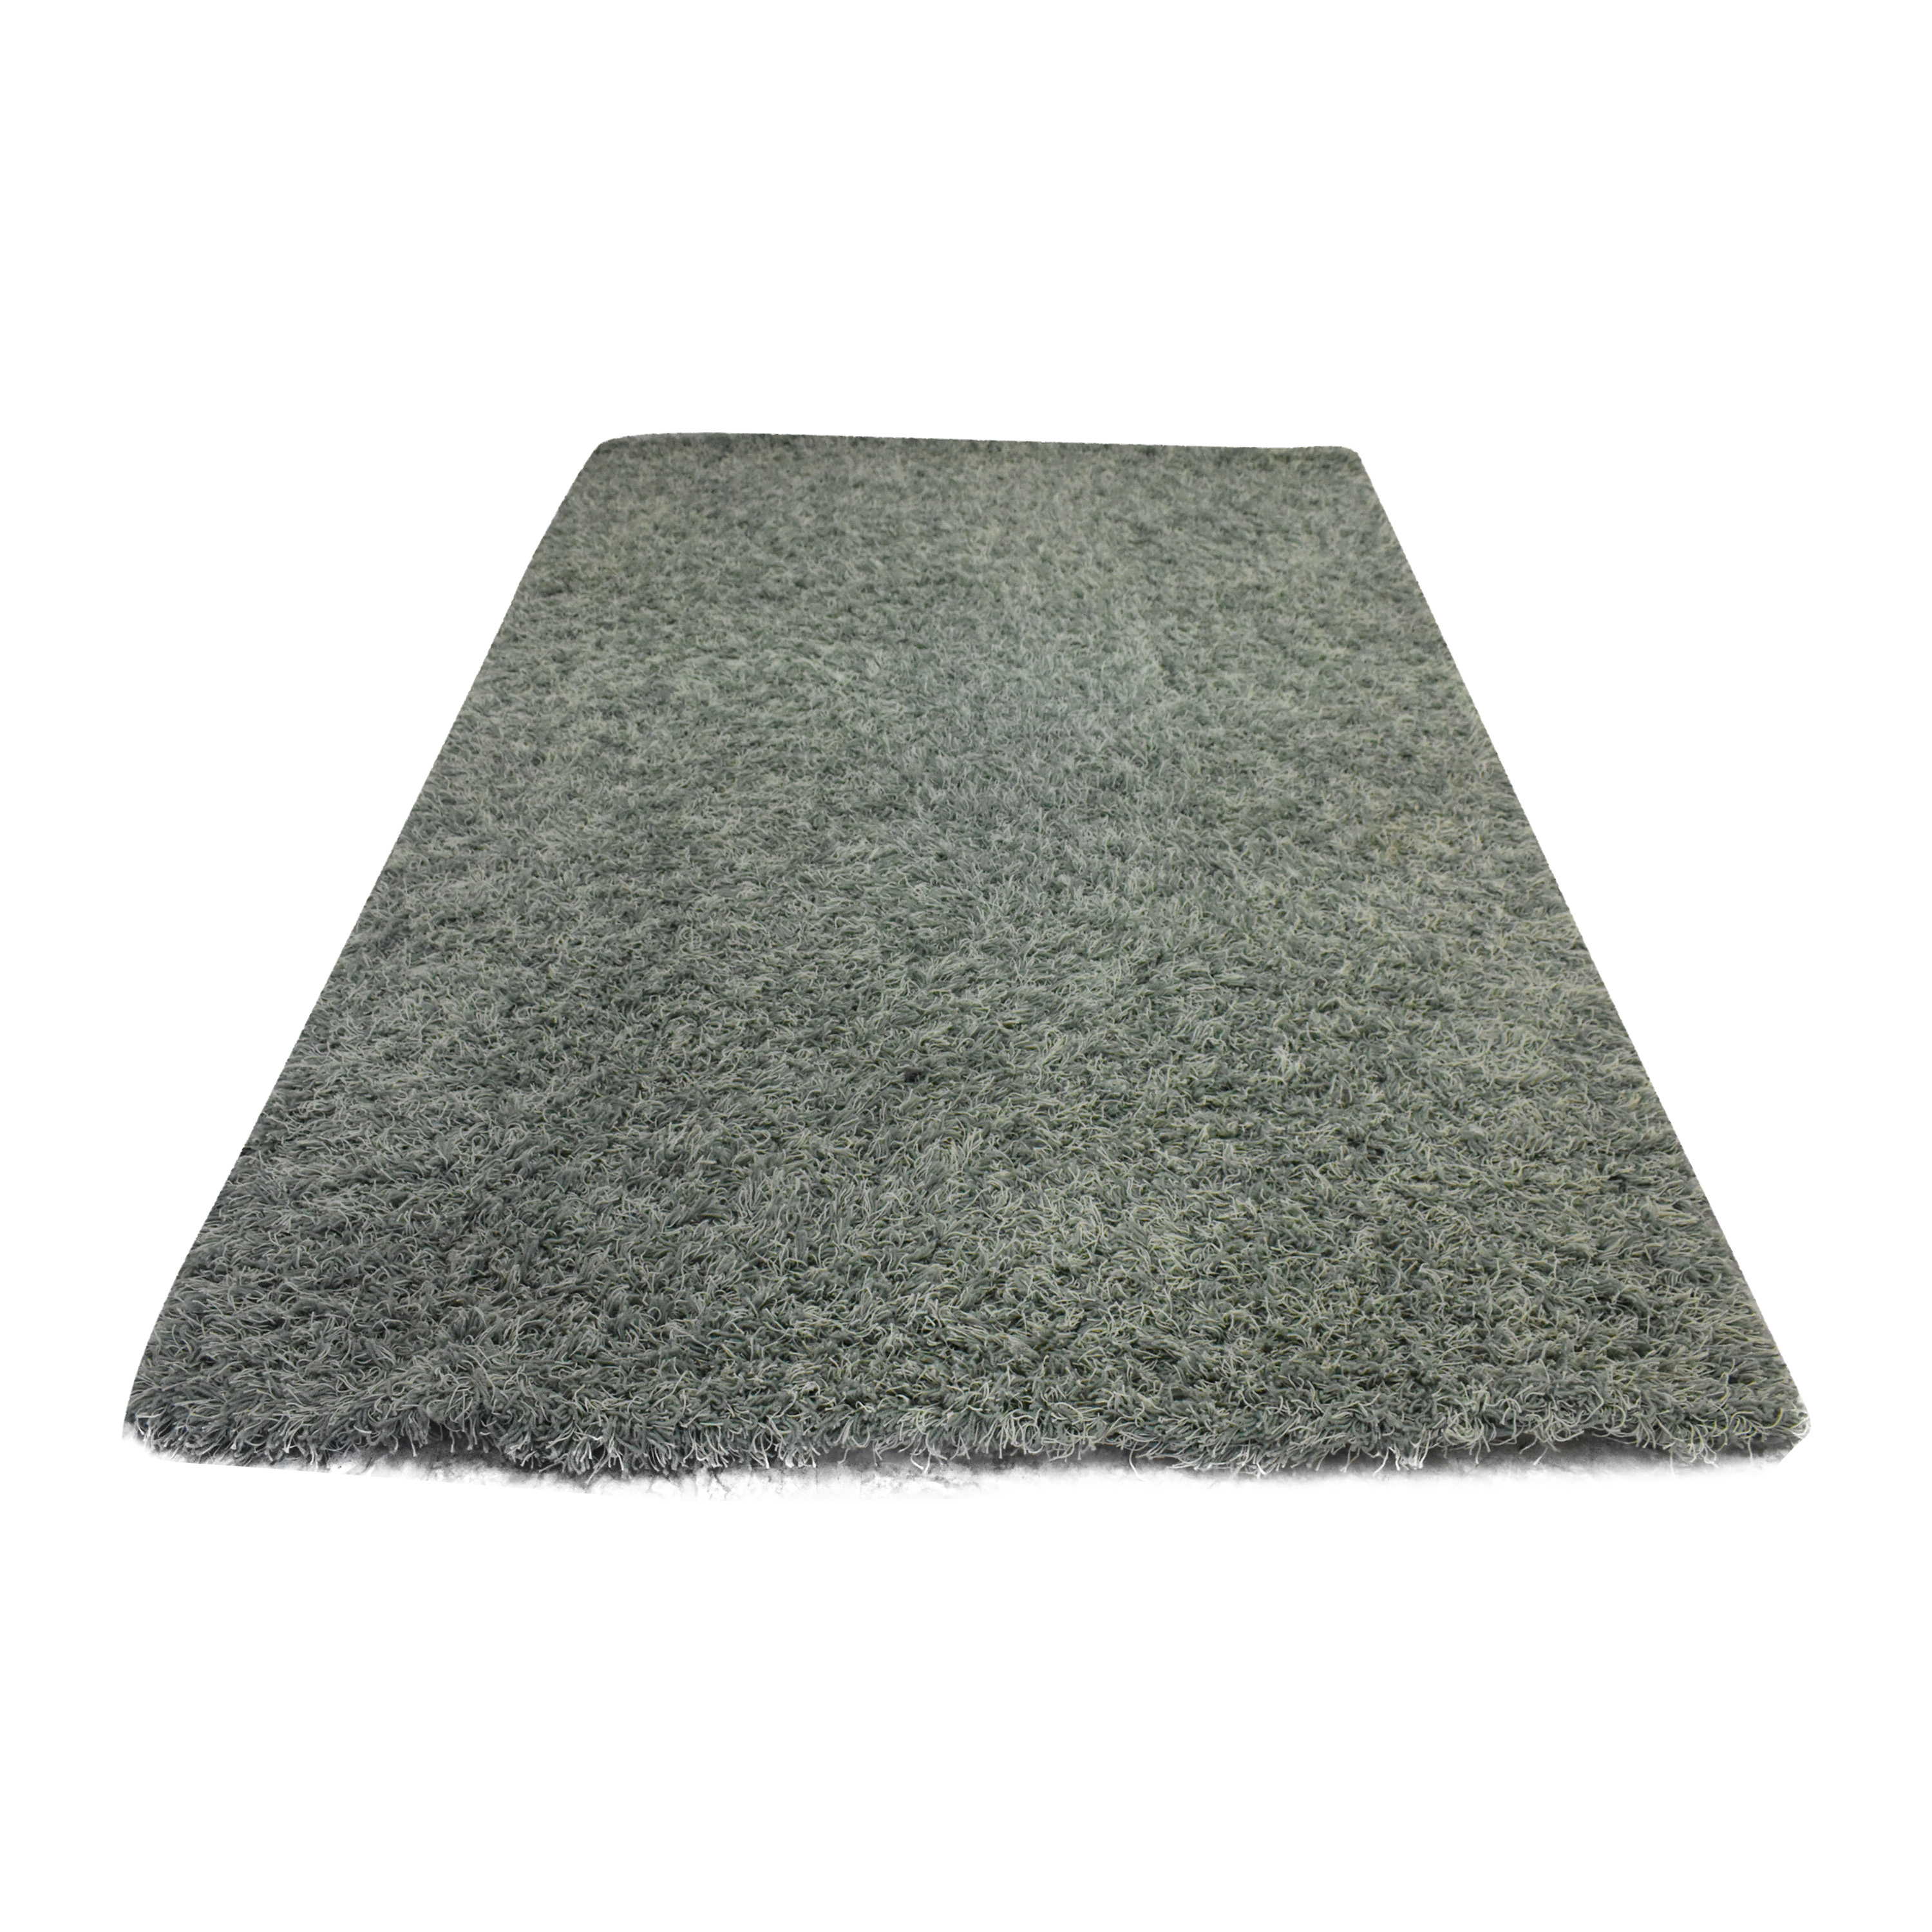 buy ABC Carpet & Home ABC Carpet & Home Super Shag Area Rug online